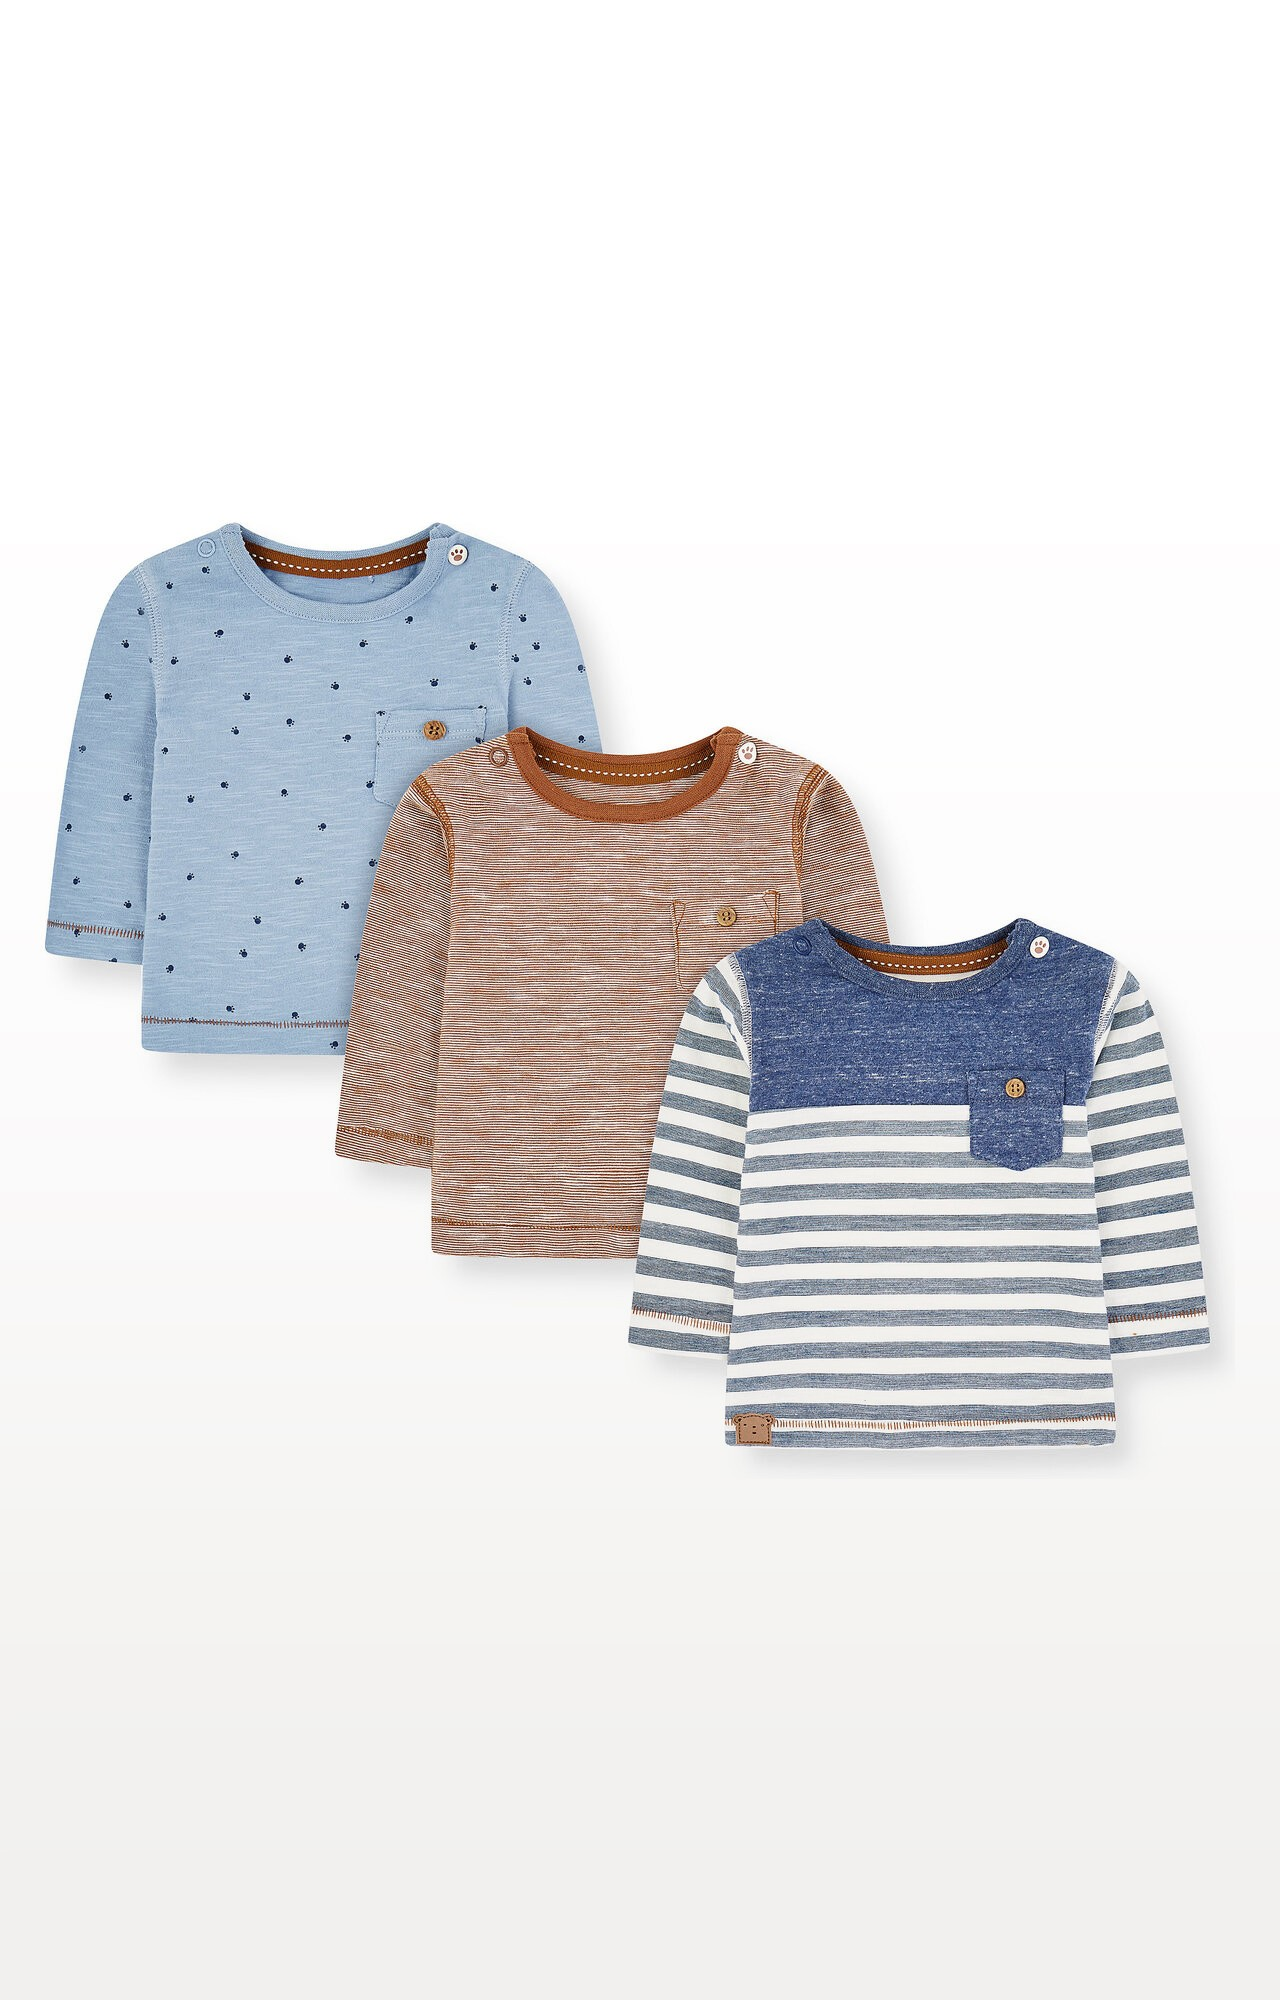 Mothercare | Blue Stripe, Paws and Brown T-Shirts - Pack of 3